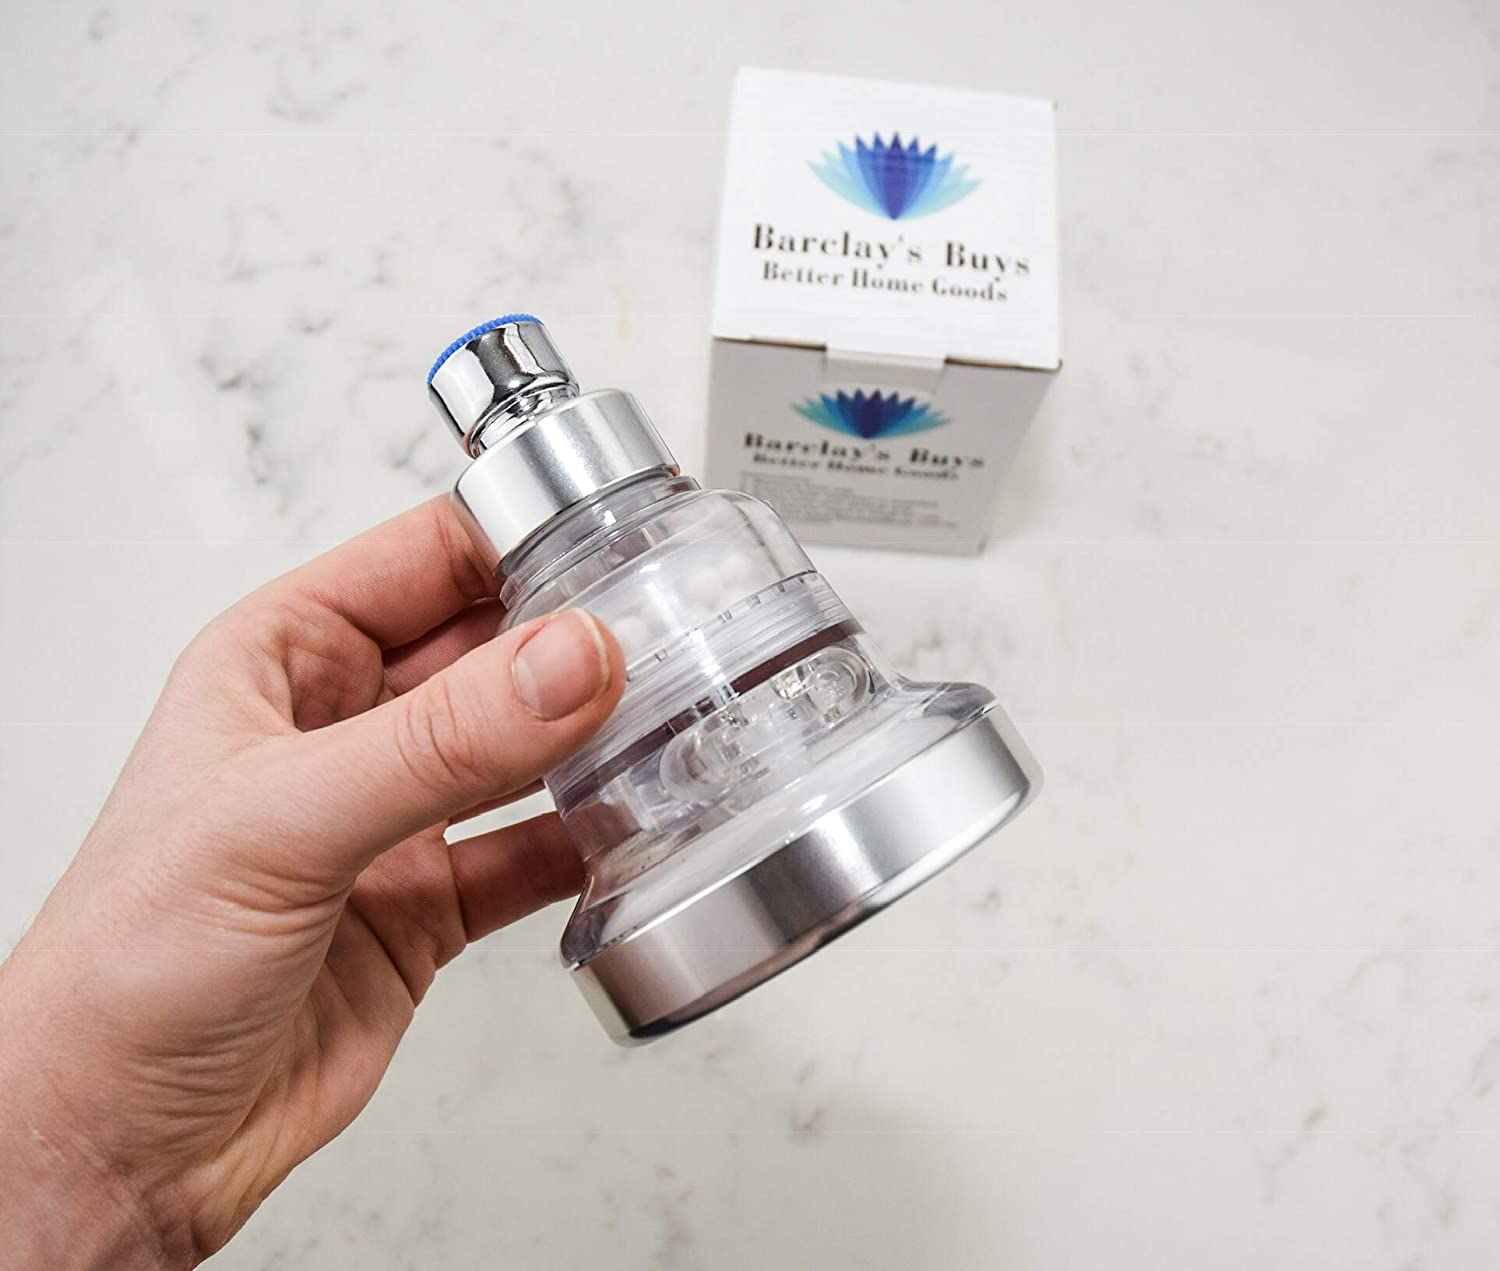 Barclay's Buys Filtered Shower Head in real